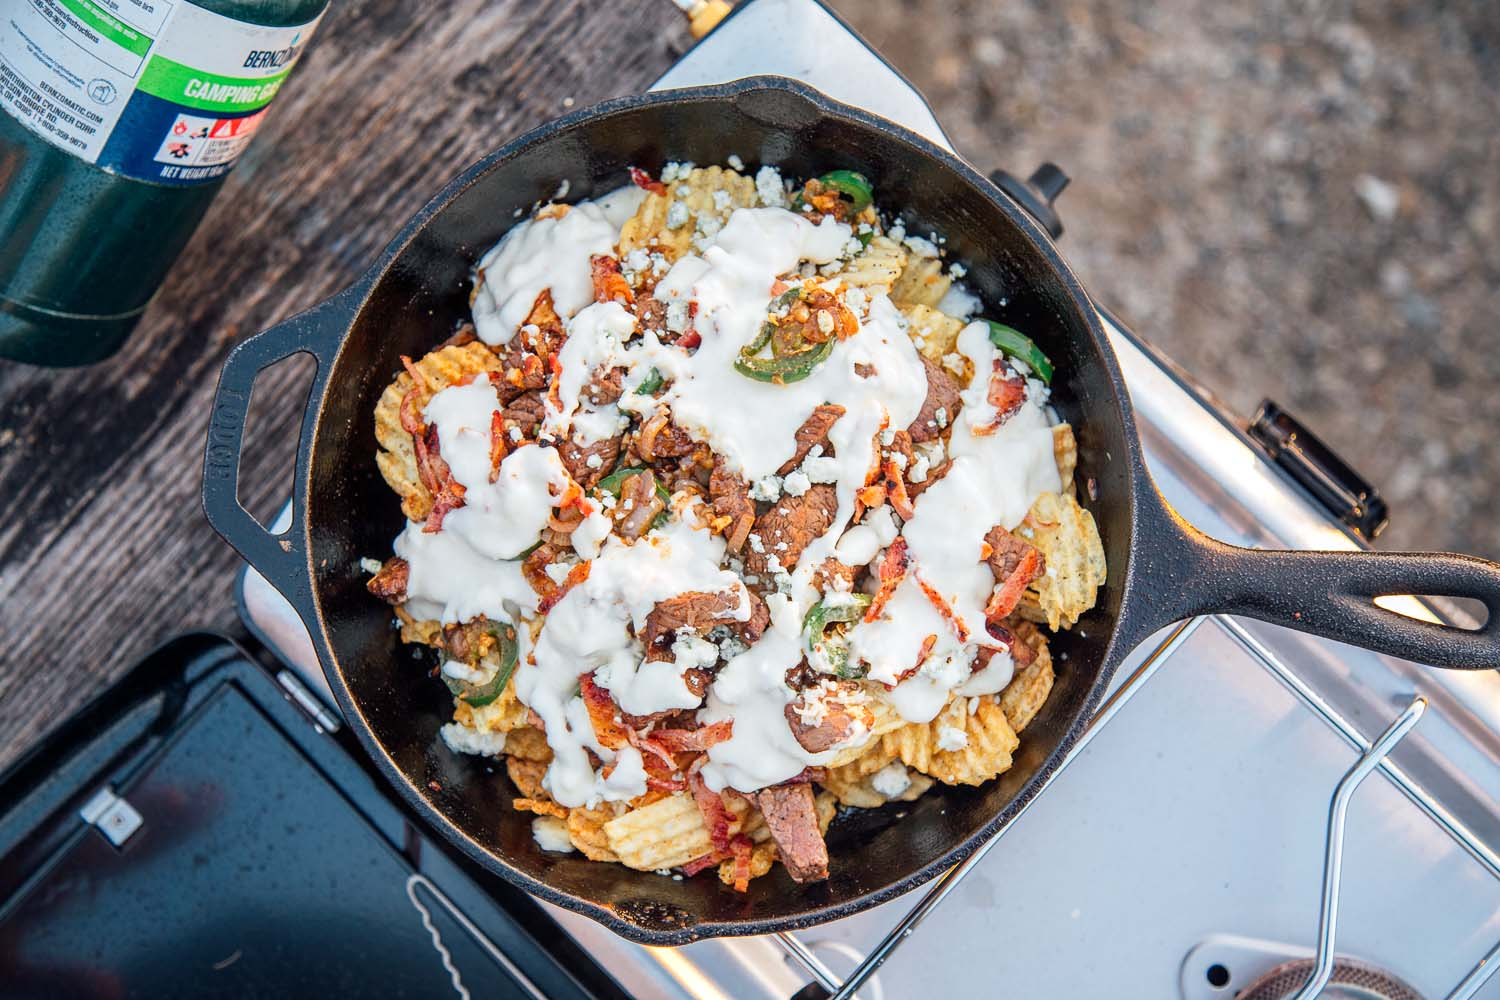 Overhead shot of nachos in a cast iron skillet on a camping stove.